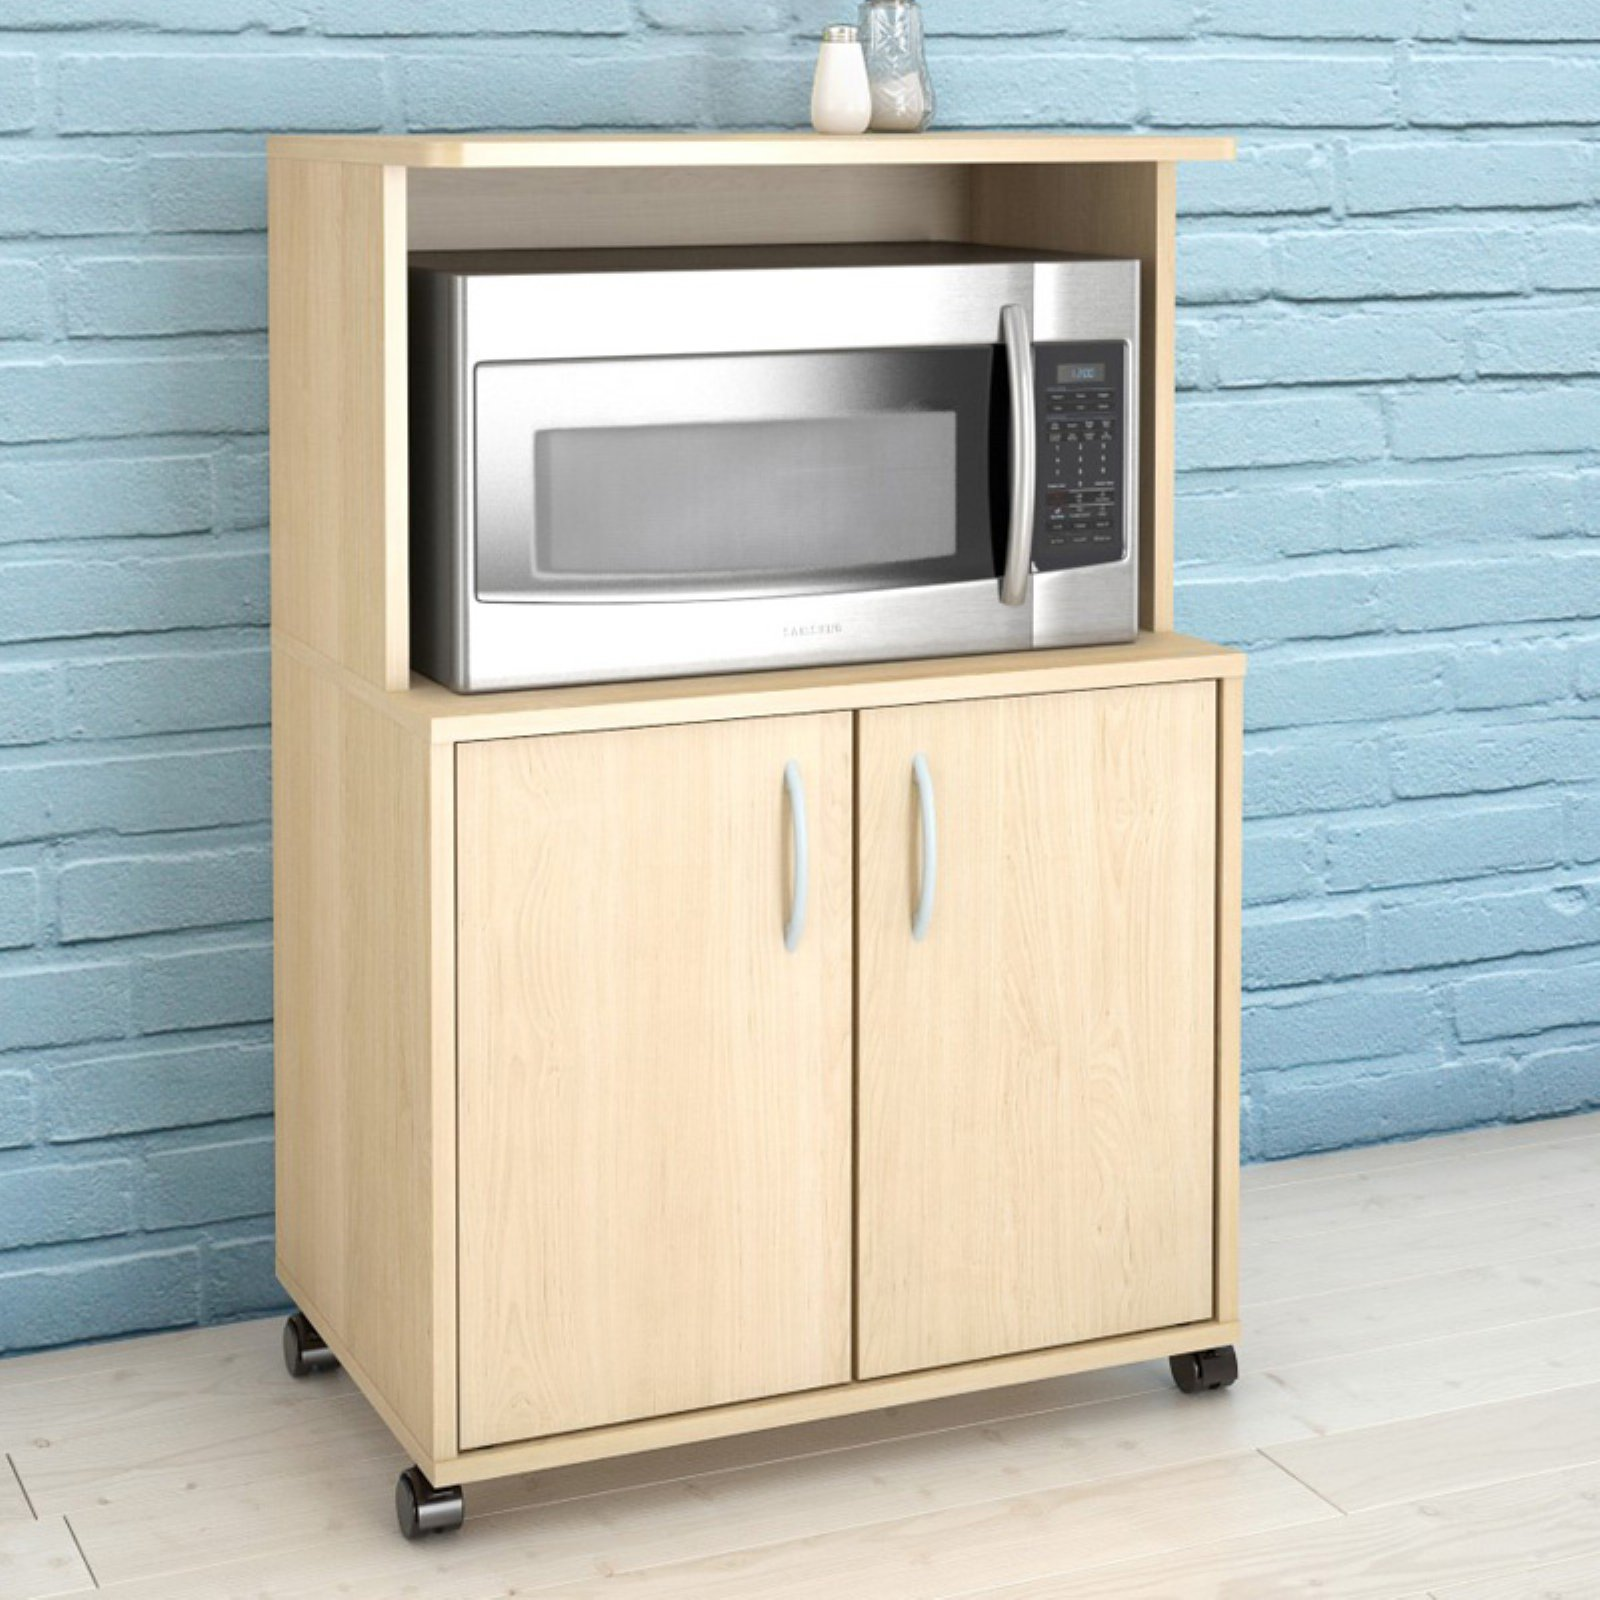 Microwave Kitchen Cart with Storage Pine  Walmartcom